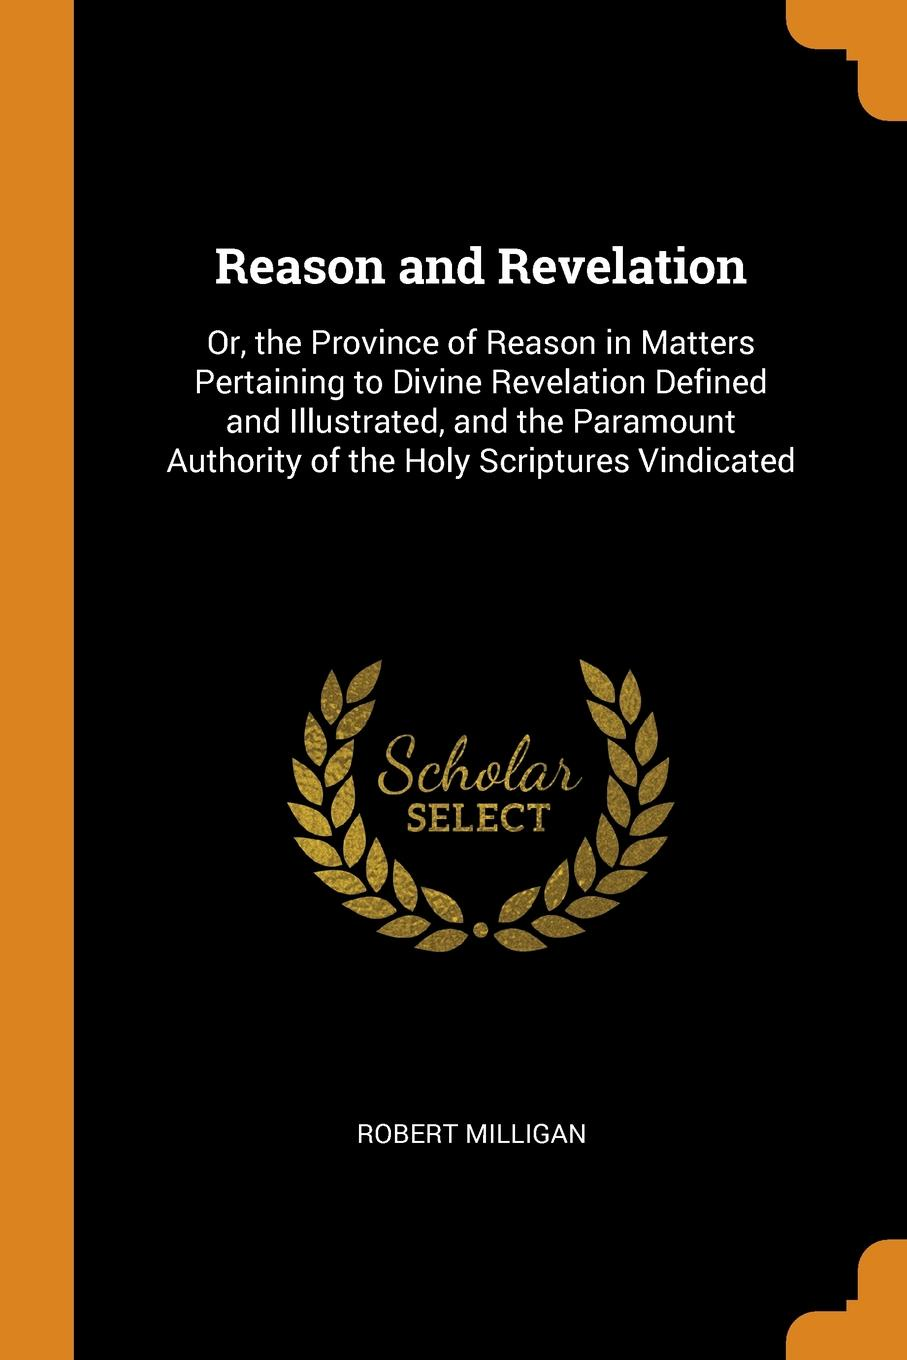 Reason-and-Revelation-Or-the-Province-of-Reason-in-Matters-Pertaining-to-Divine-Revelation-Defined-and-Illustrated-and-the-Paramount-Authority-of-the-